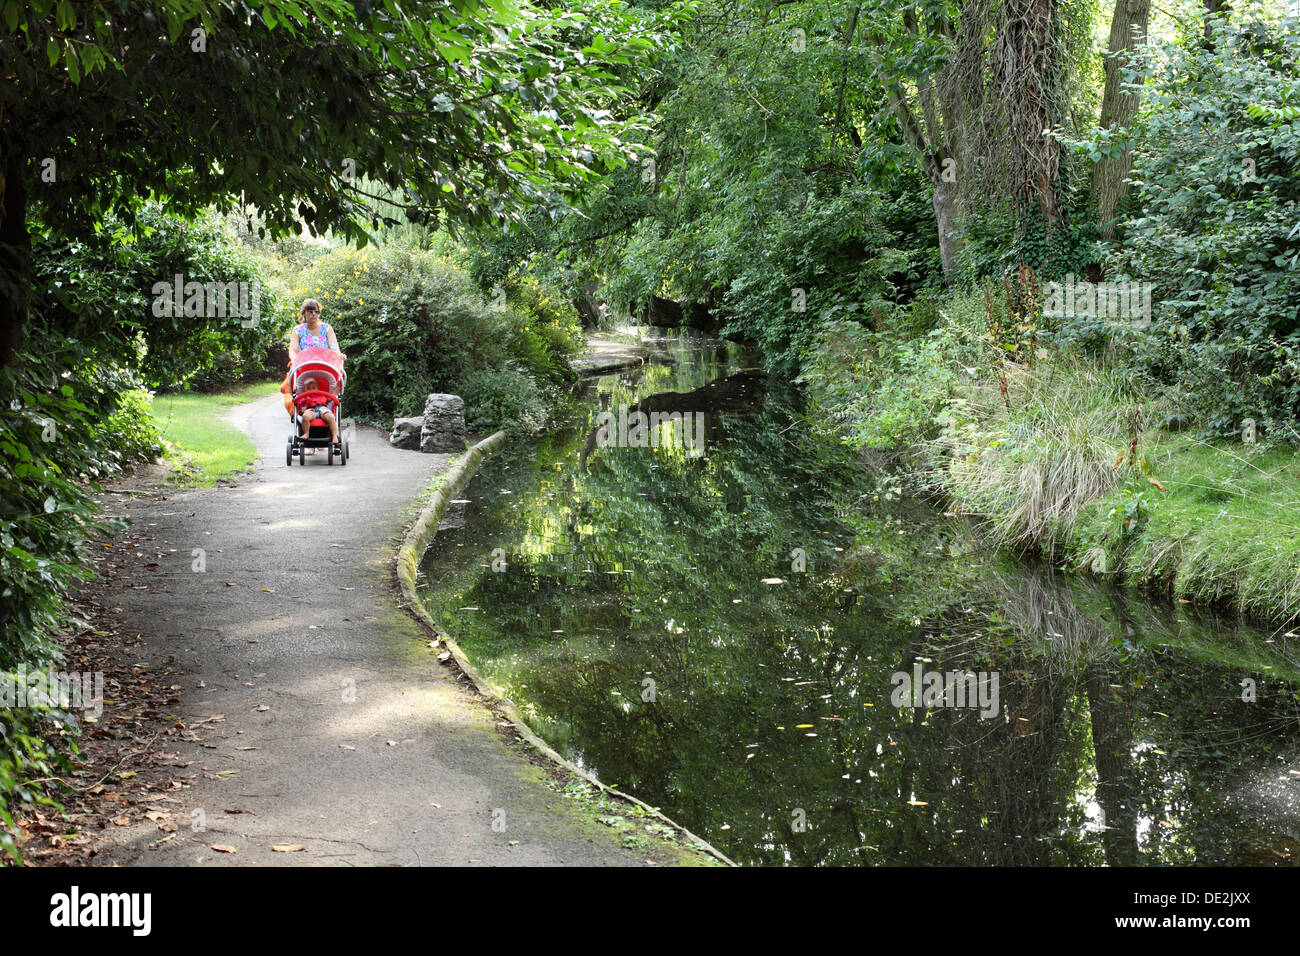 New River Walk, a footpath route between Canonbury Road and St Paul's Road, Canonbury, North London - Stock Image